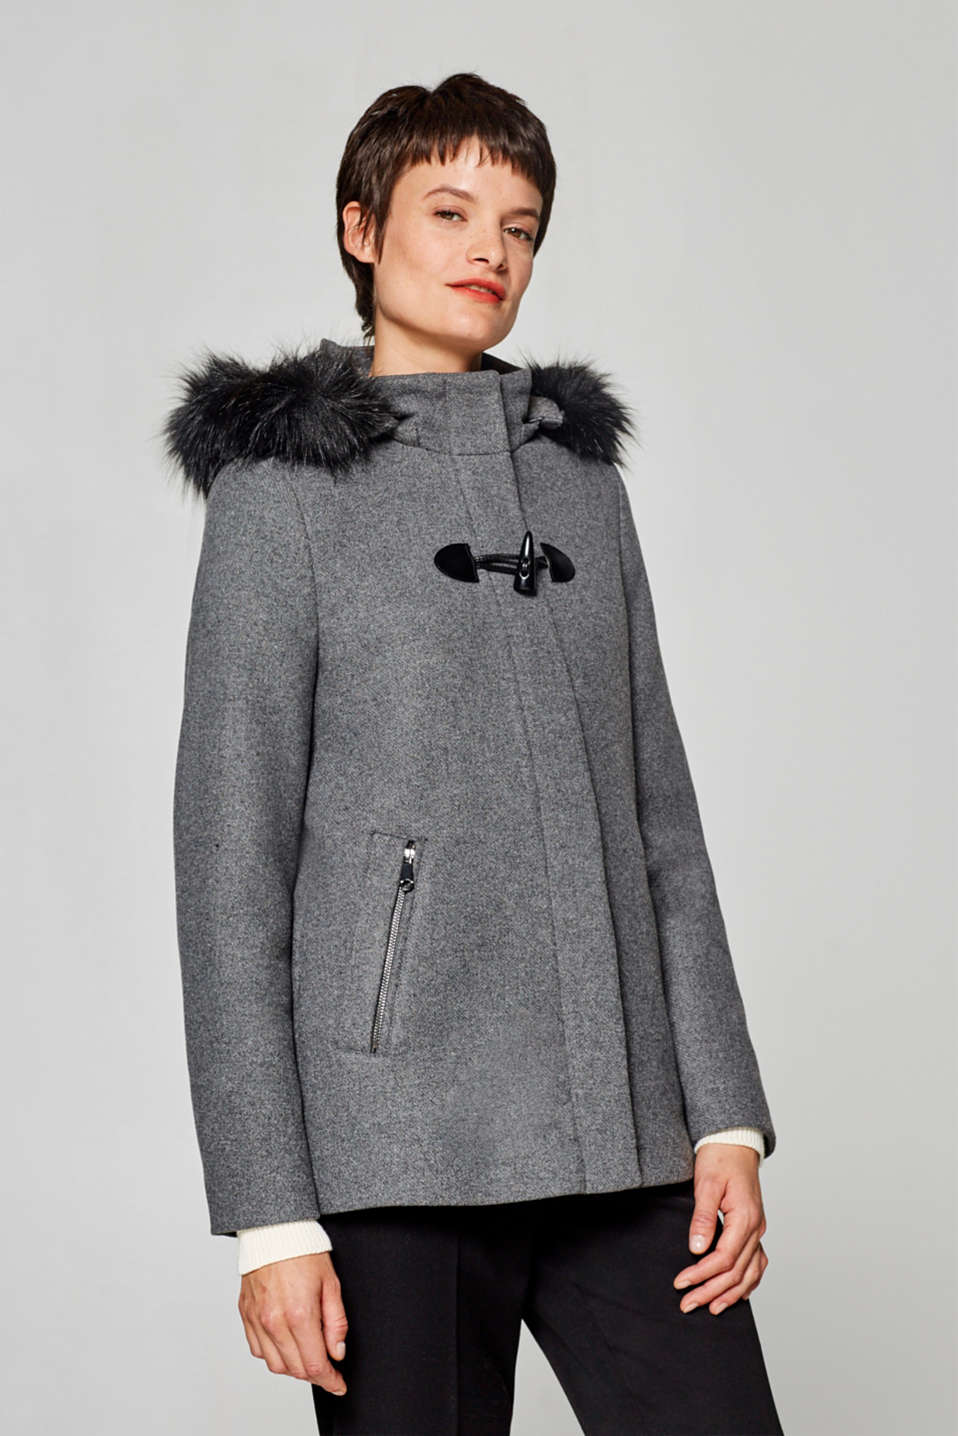 Esprit - Wool blend: jacket with a woven faux fur hood